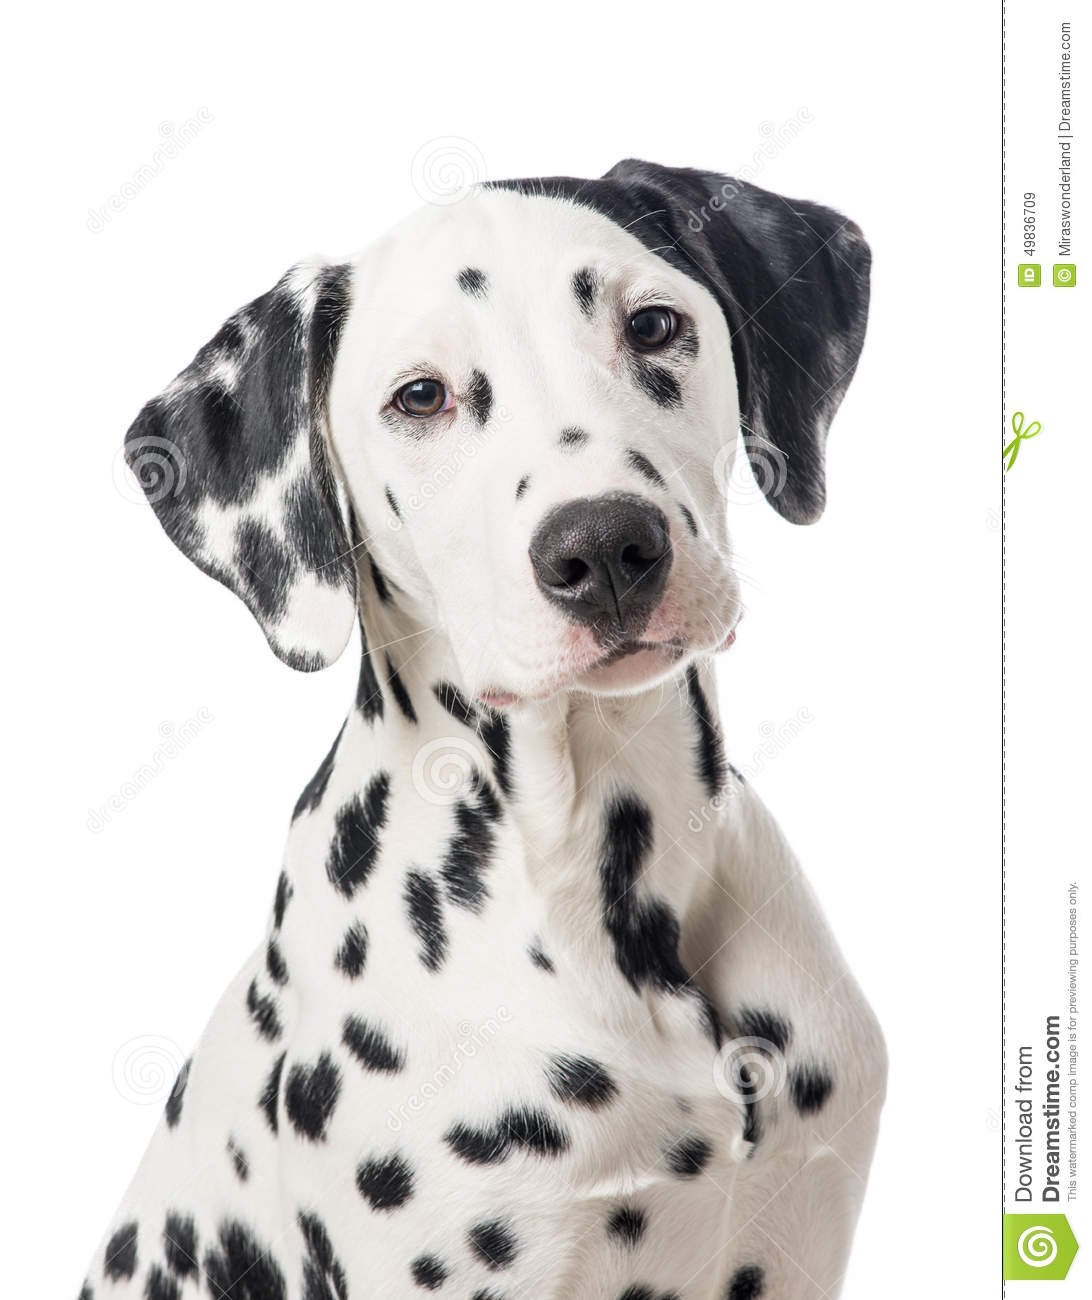 Dalmation dog portrait